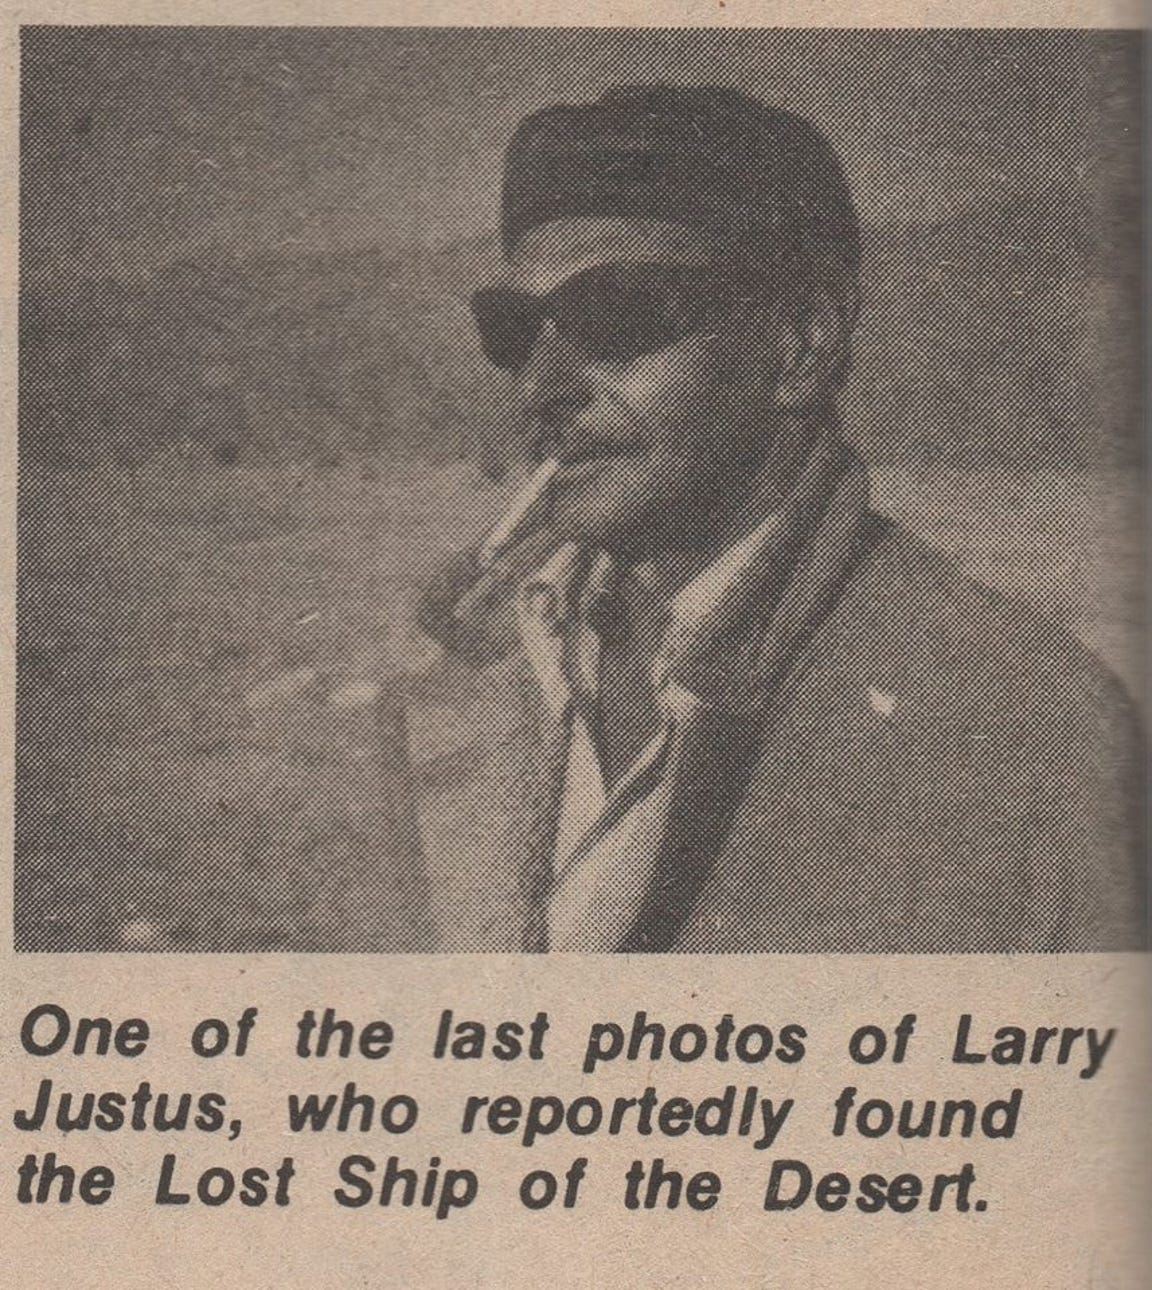 A newspaper clipping from an unidentified publication that depicts of Larry Justus, who reportedly found the lost ship of the desert.